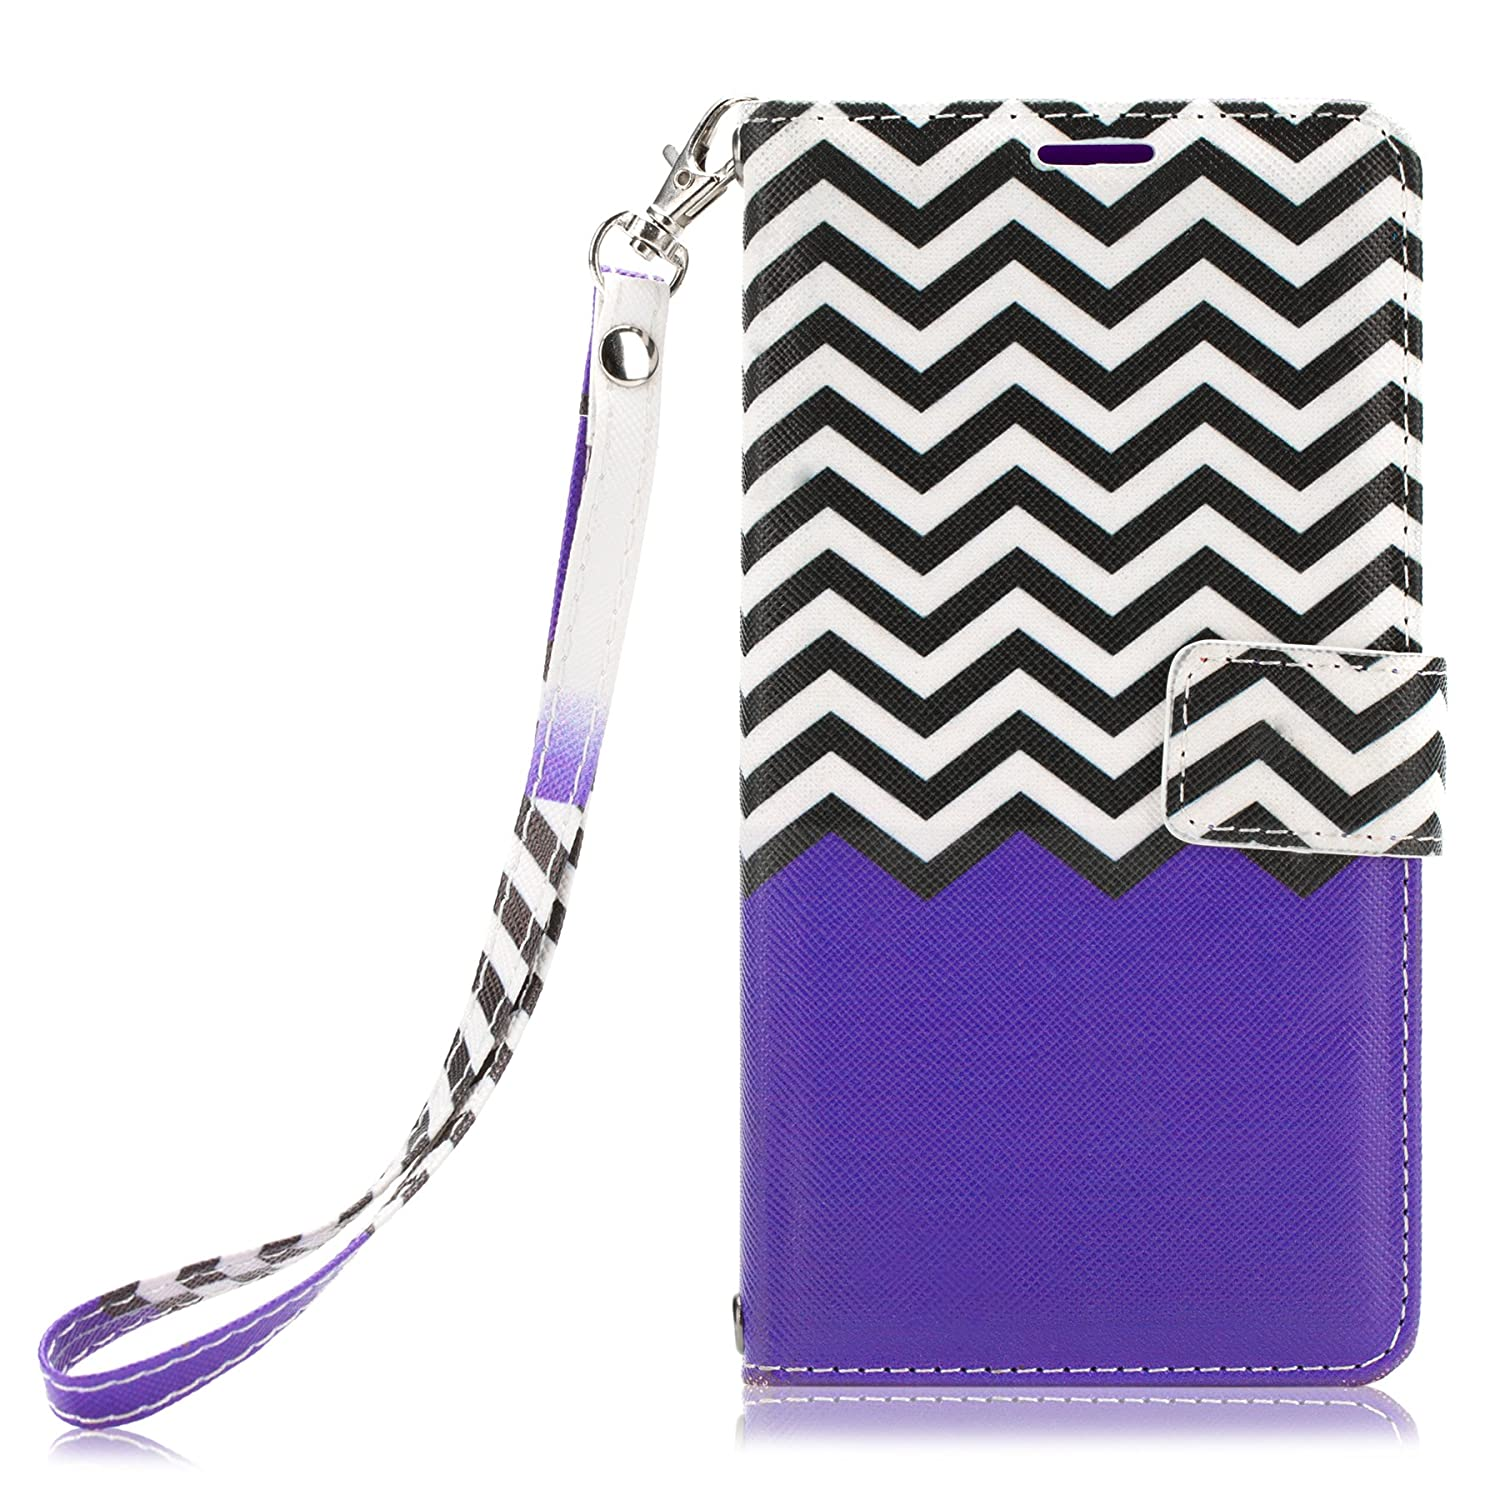 Galaxy Note Case Cellularvilla SM N910S Image 2